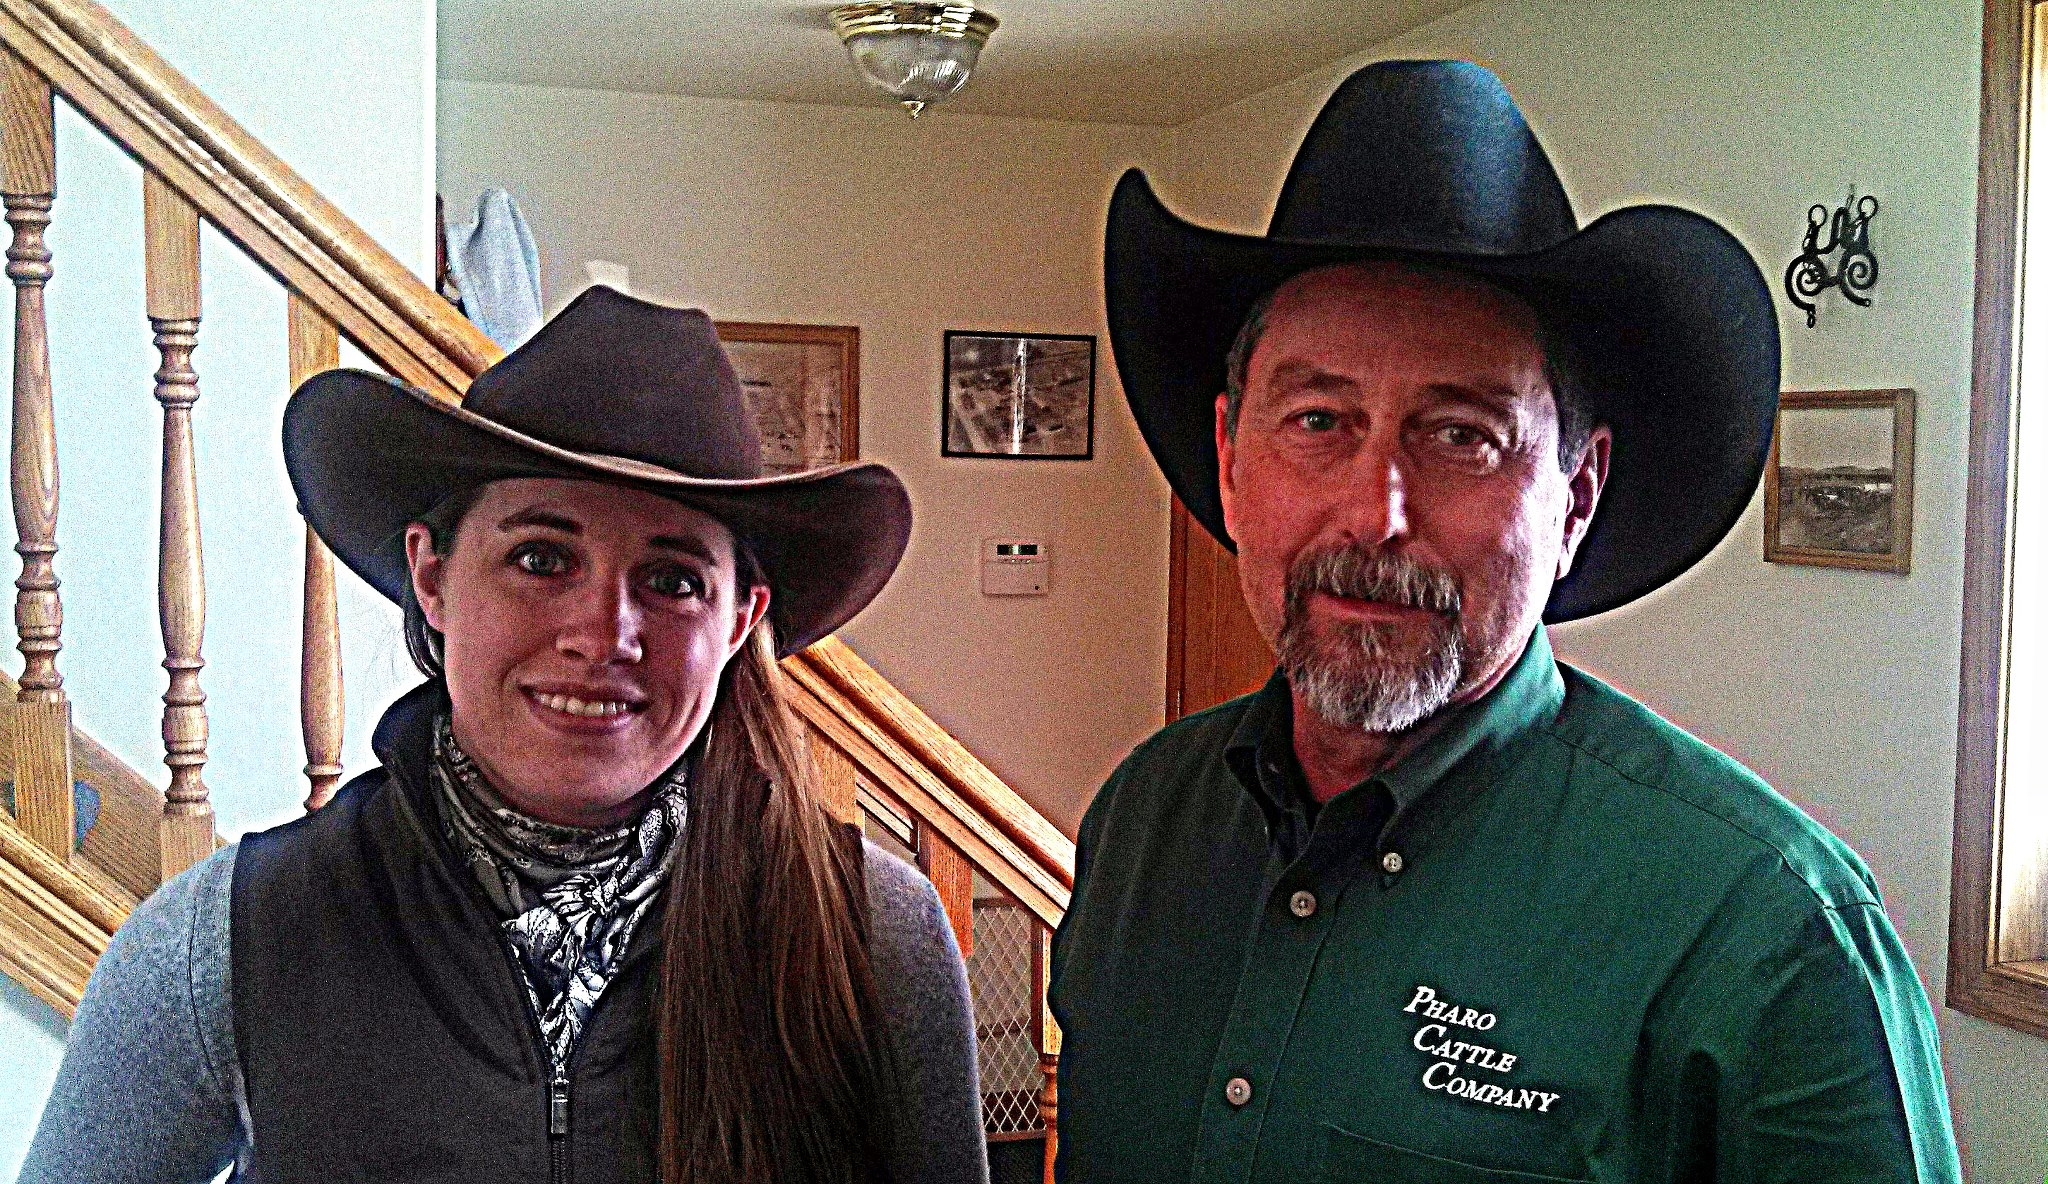 I traveled to Colorado in April 2014 to attend one of Kit Pharo's famous bull sales and interview him.